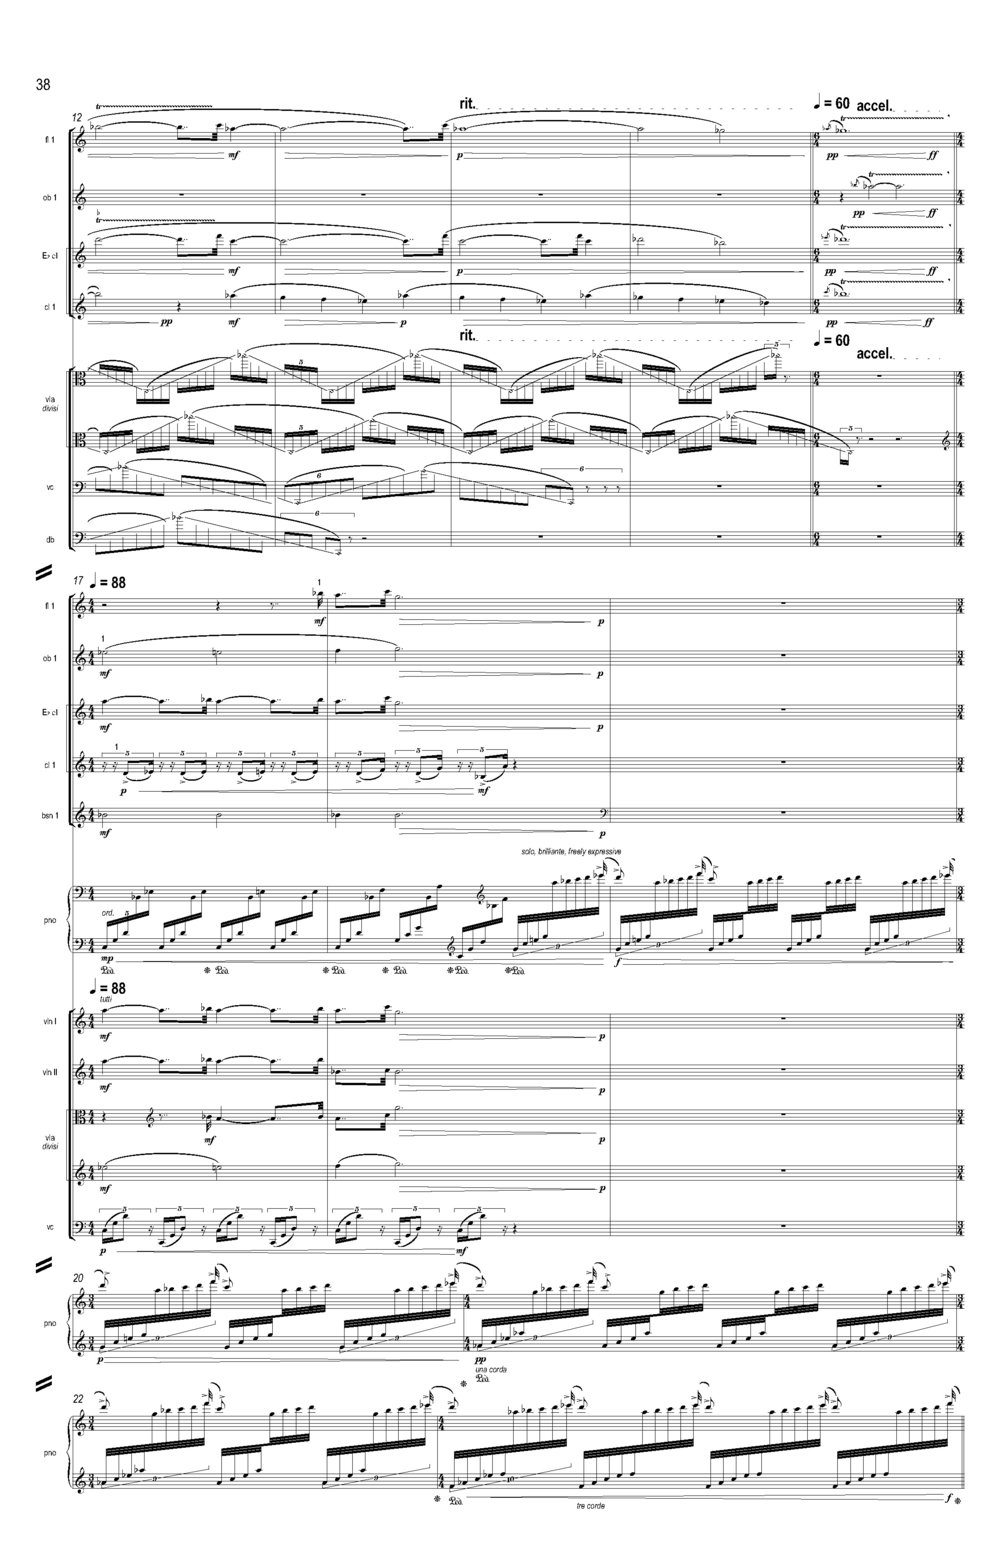 Ciach_Collective Uncommon REVISED_Full Score (Feb 2017)_Seite_44.jpg